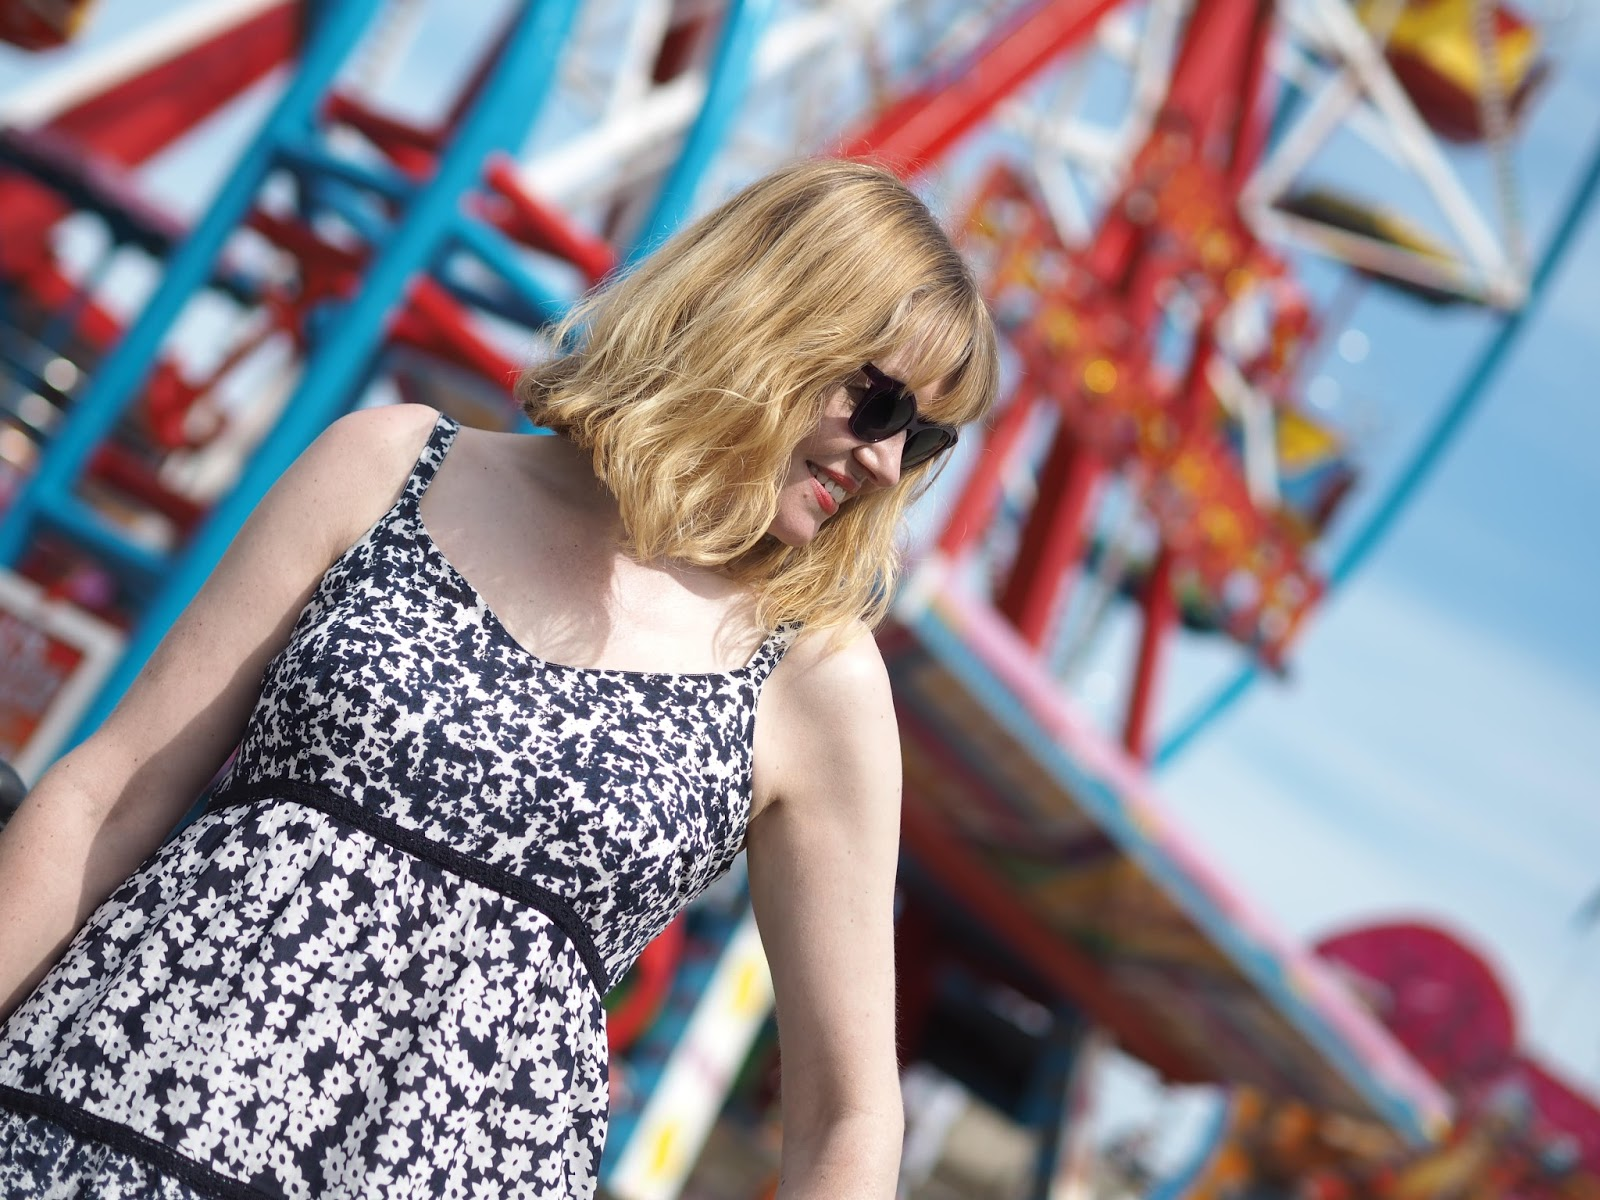 Blue floral sundress big wheel, fairground Scarborough